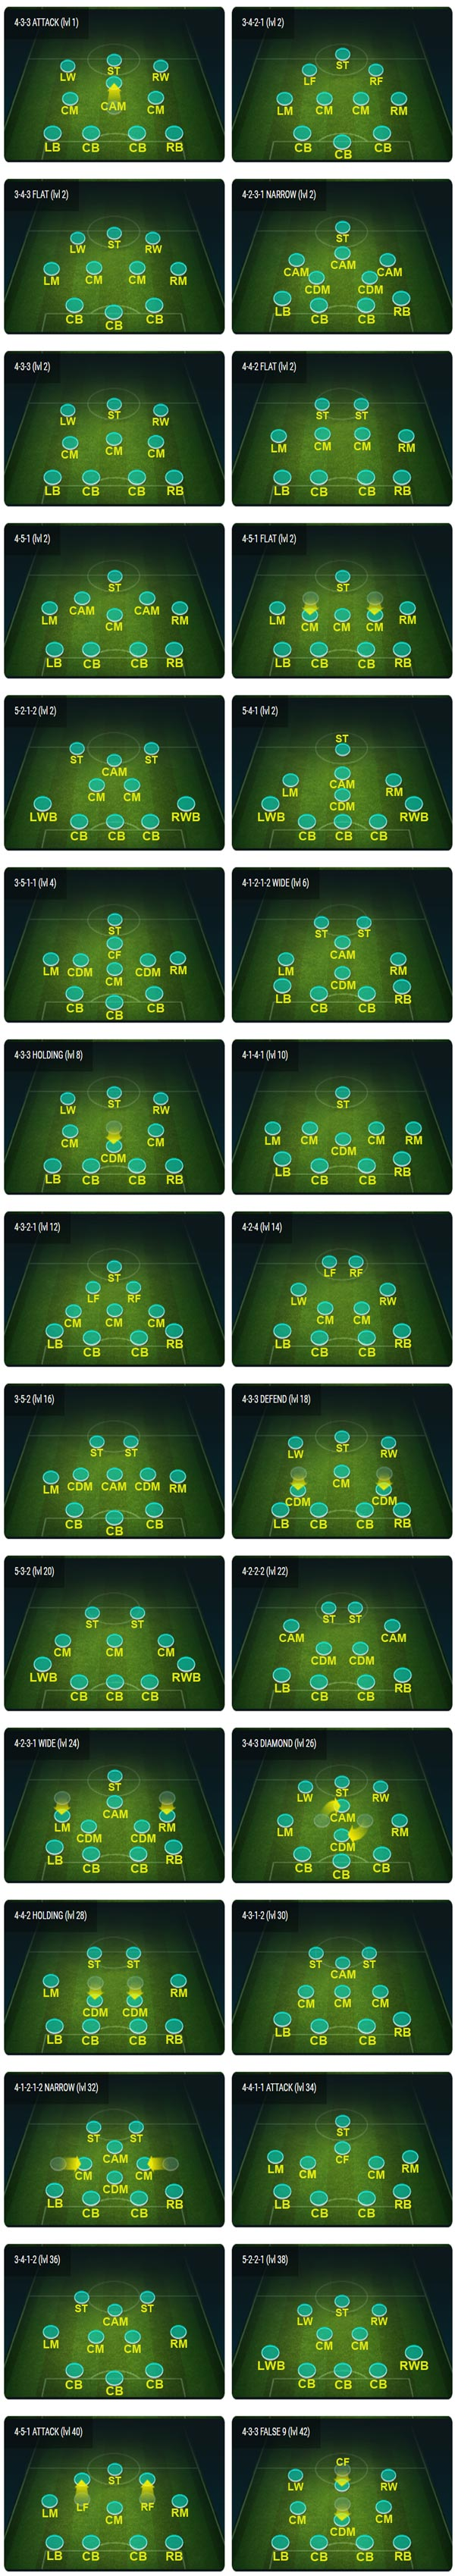 FIFA Mobile Formation